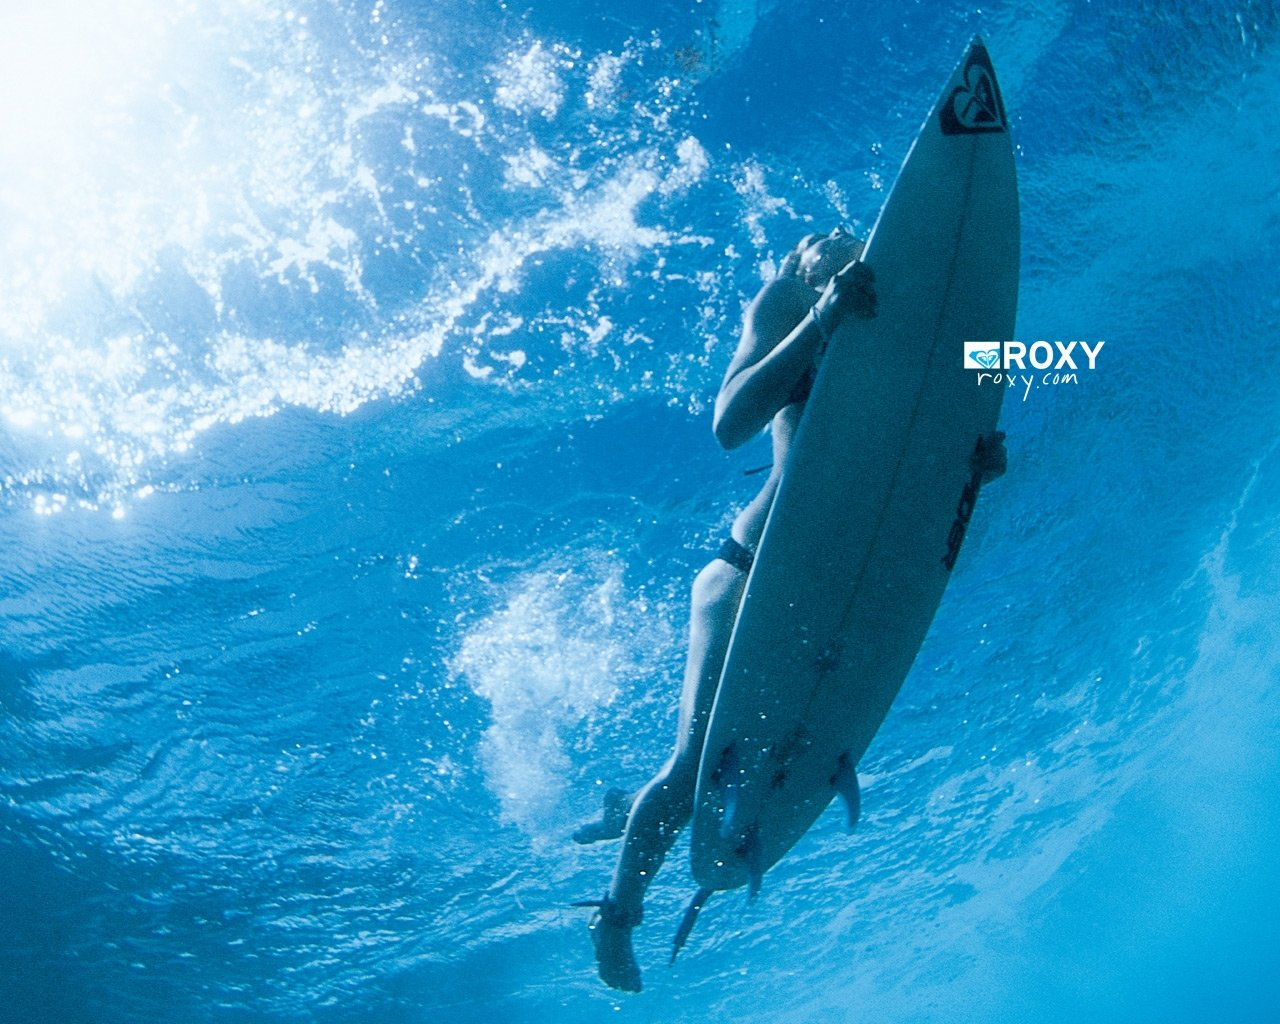 Surfing Duck Dive Roxy Surf Wallpaper 1280x1024 Full HD Wallpapers 1280x1024